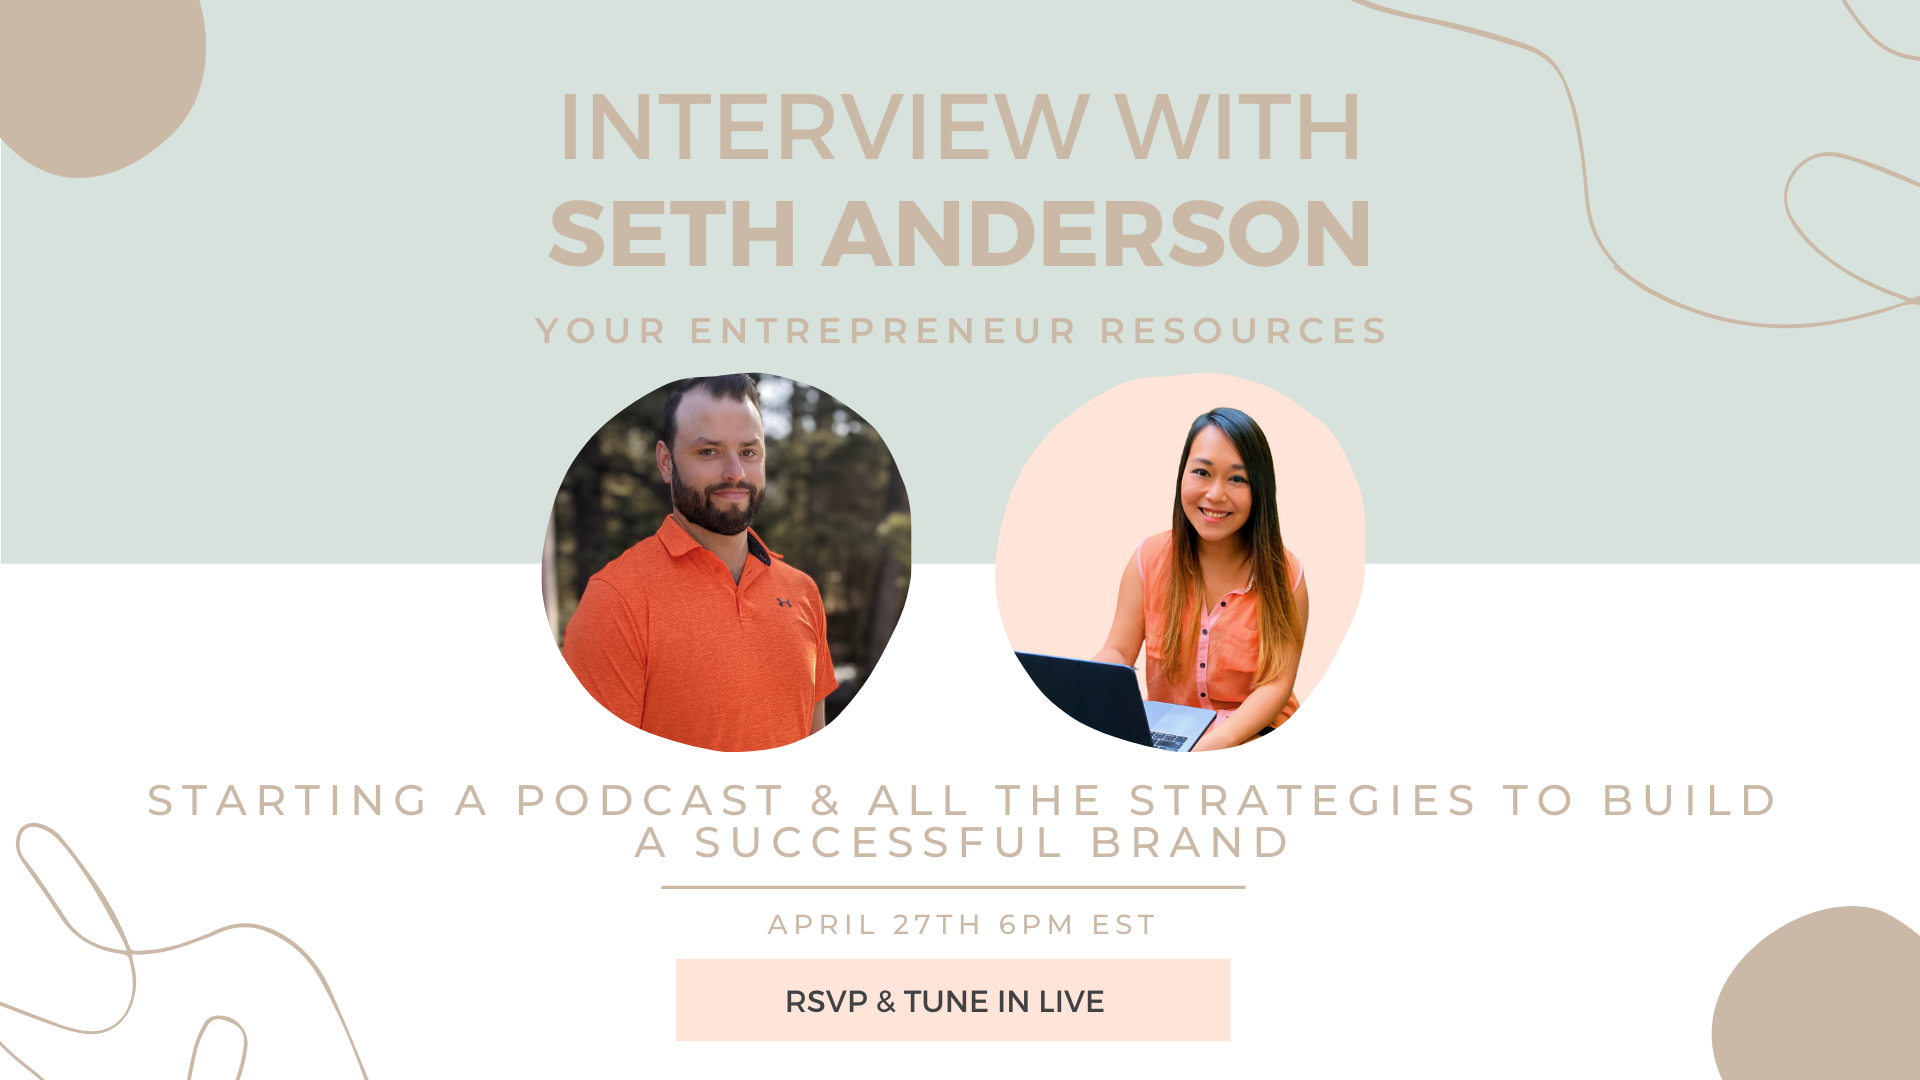 Starting a podcast & all the strategies to build a successful brand with Seth Anderson